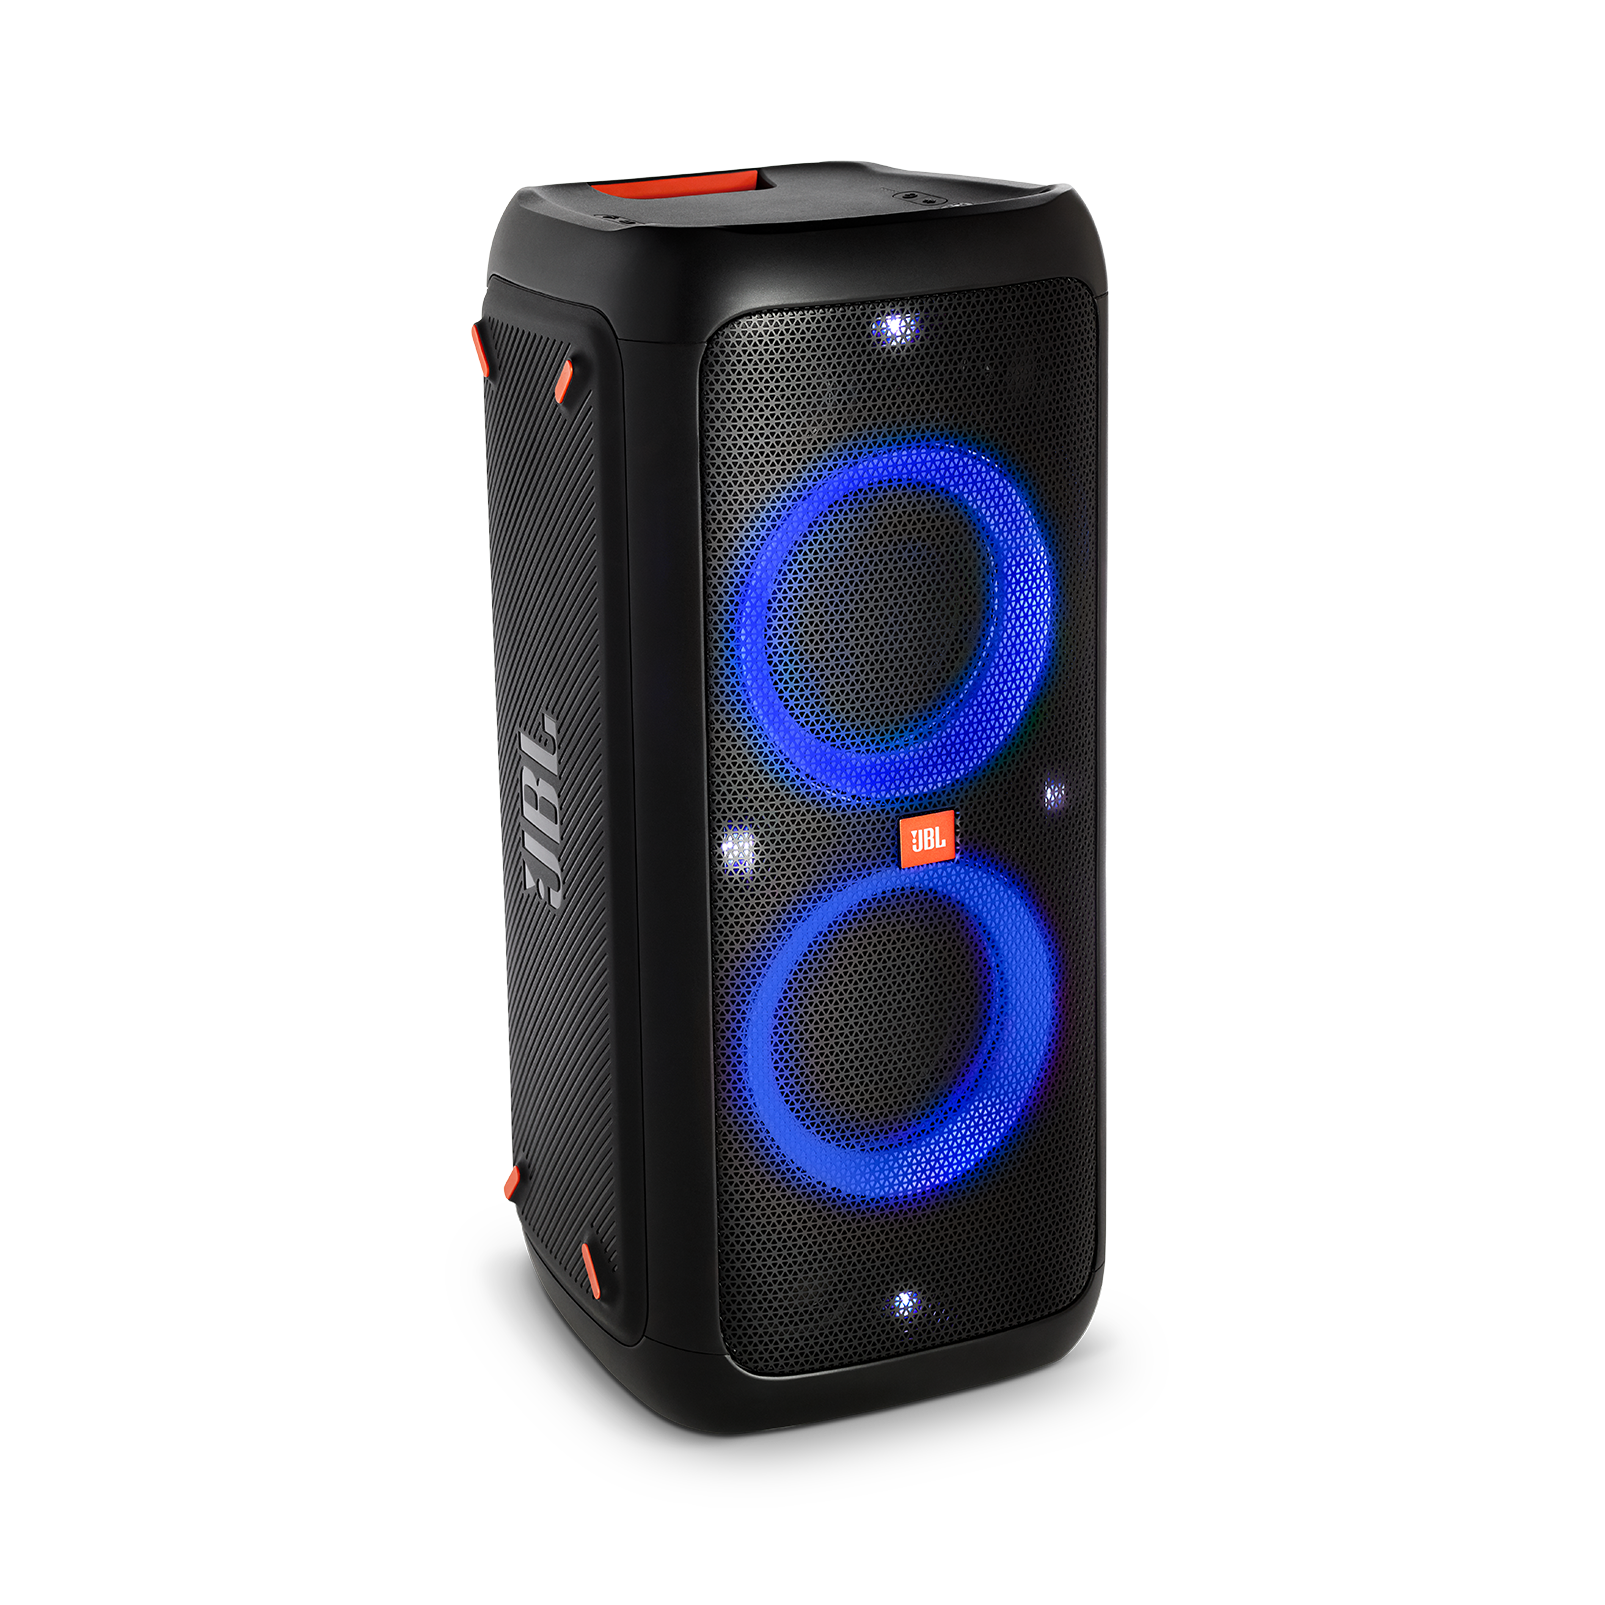 JBL PartyBox 300 Premium High Power Portable Wireless Bluetooth Audio System - Black